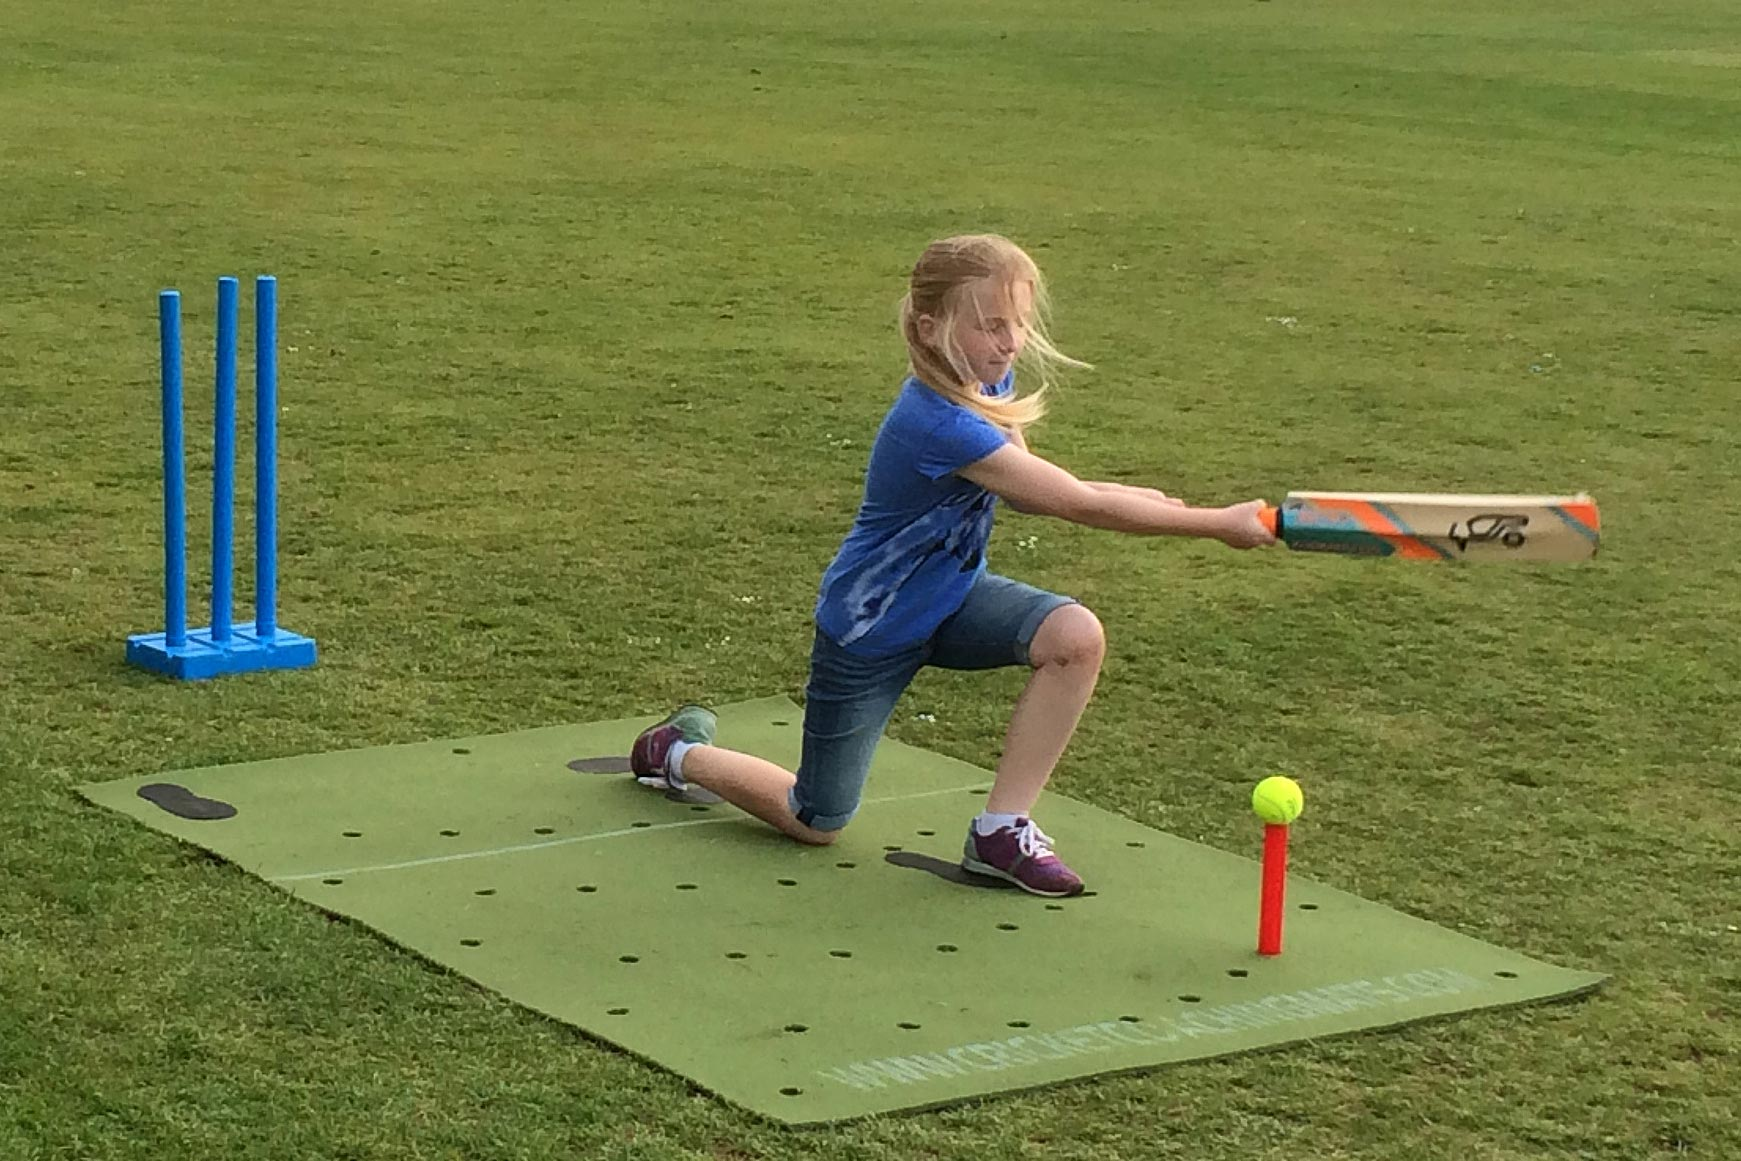 Practice cricket in the garden with the cricket training, practice coaching mat